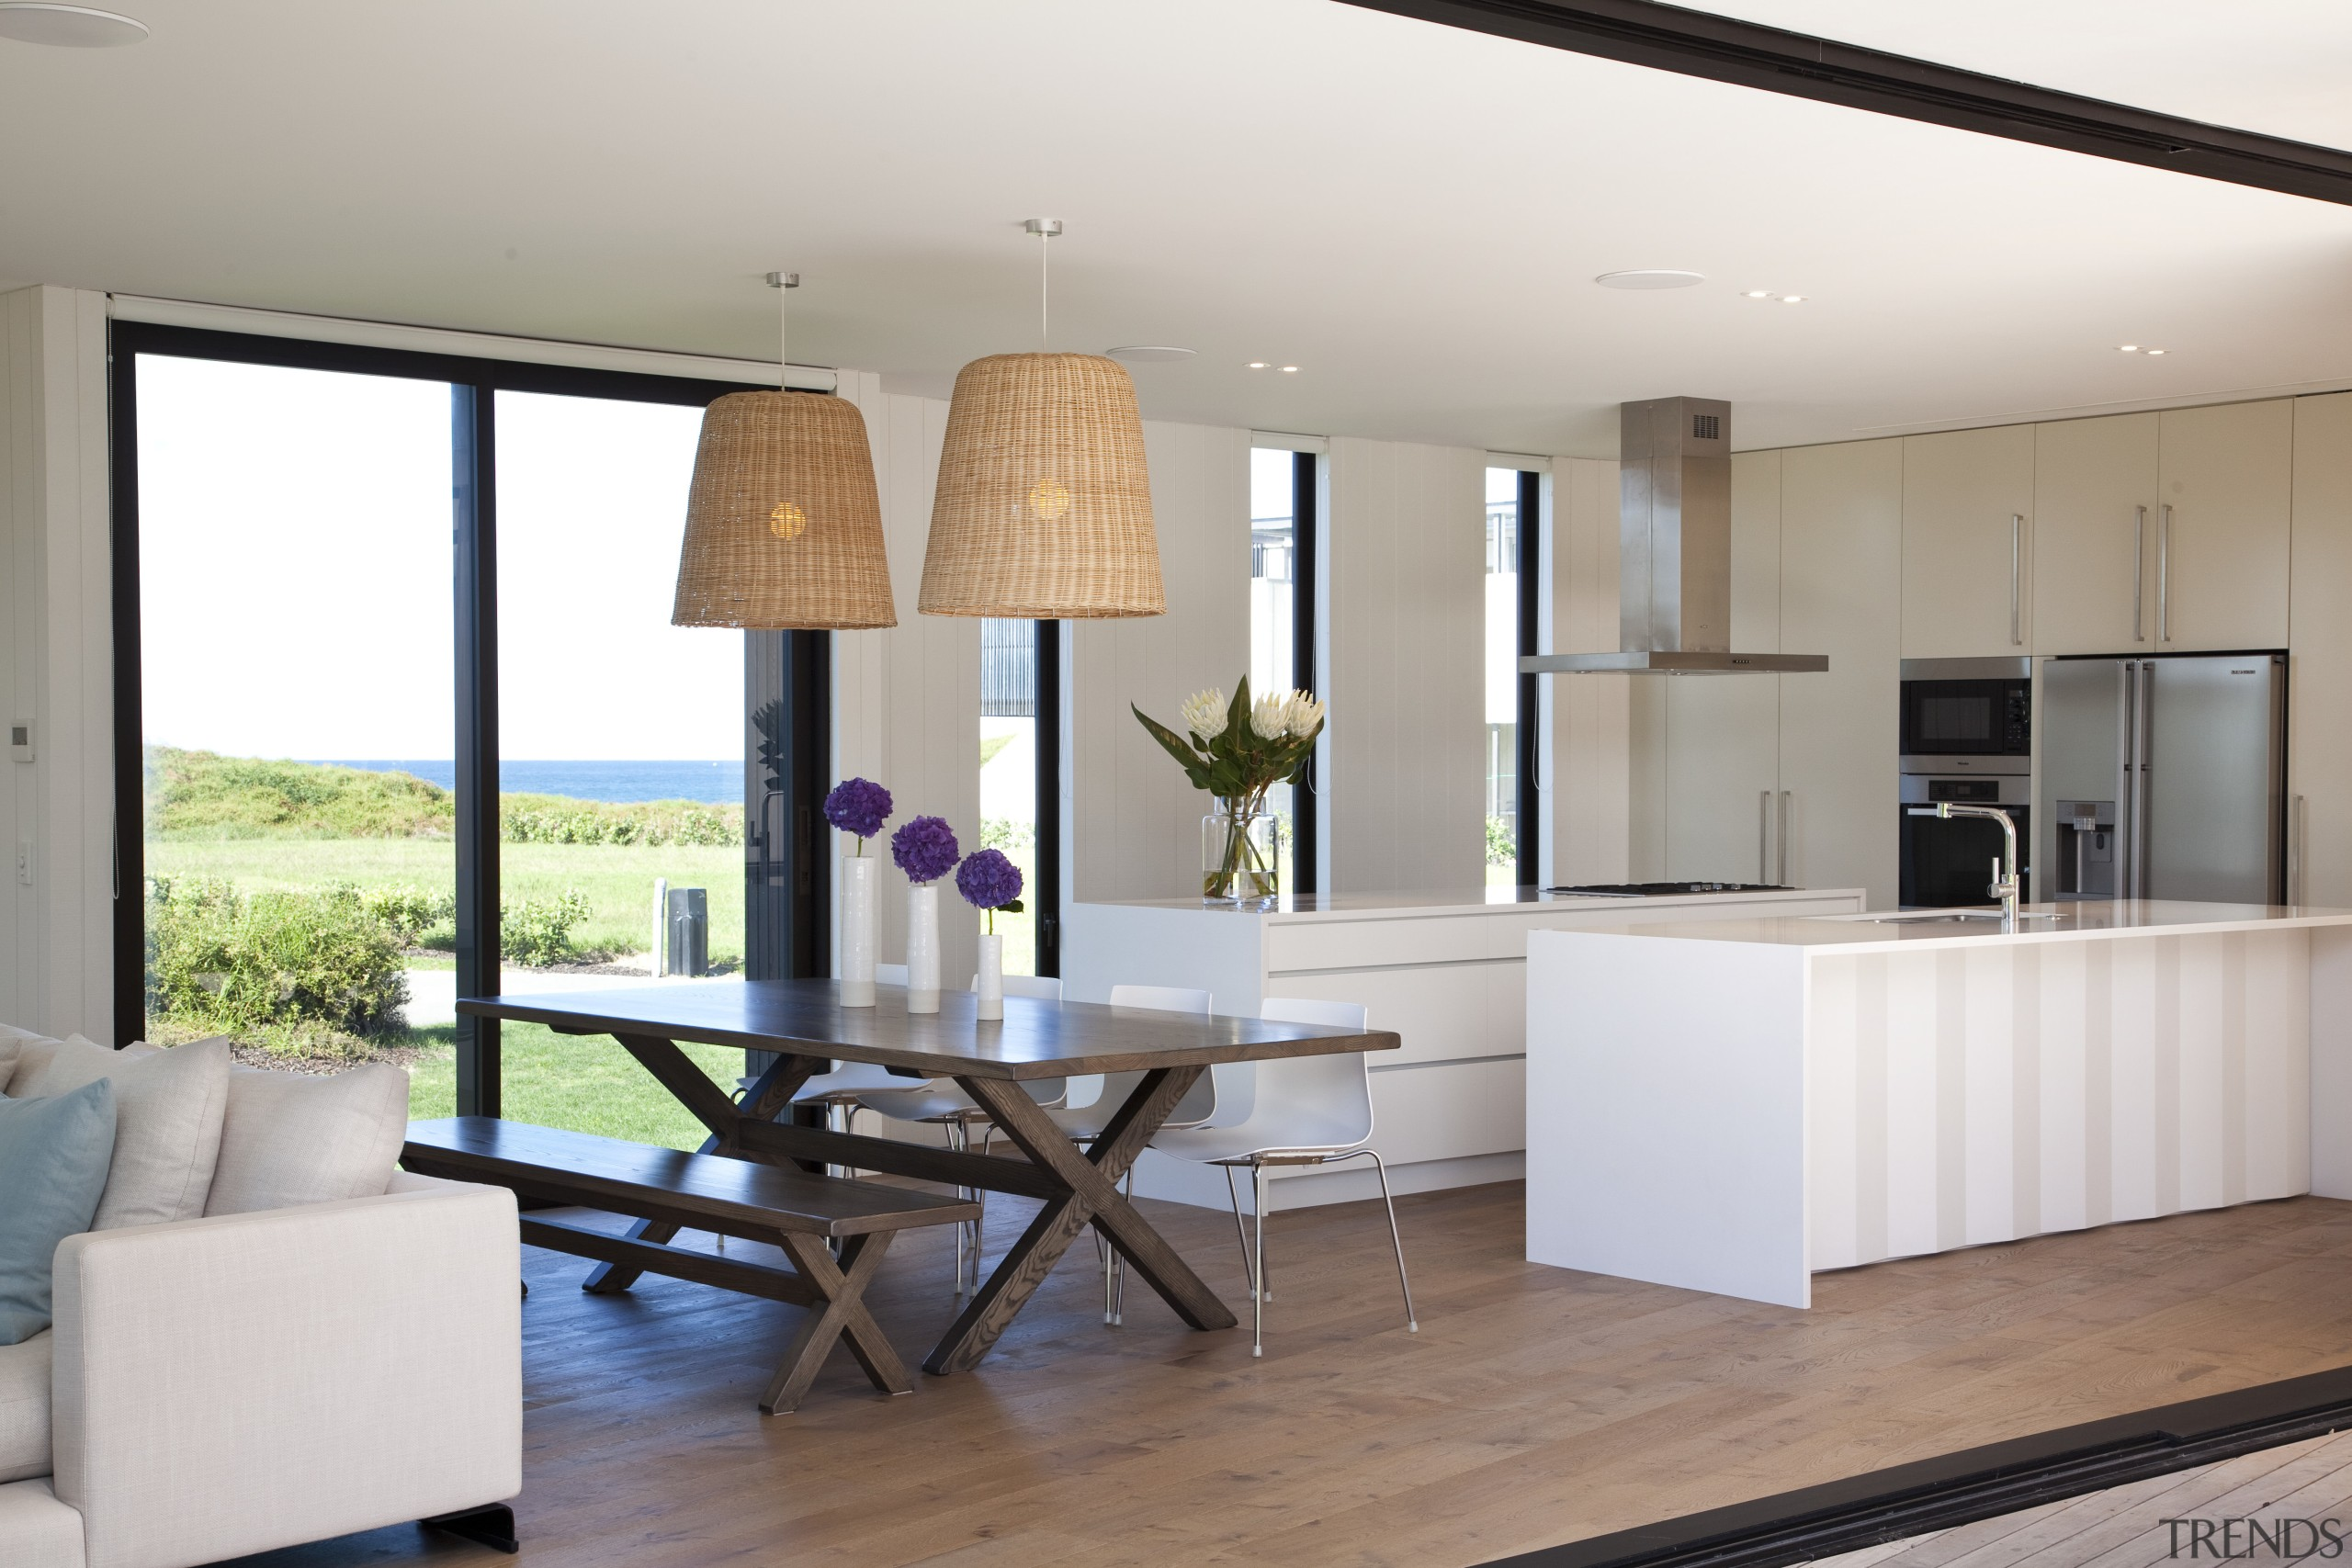 Ponting Fitzgerald-designed beach house - Ponting Fitzgerald-designed beach house, interior design, kitchen, living room, real estate, table, white